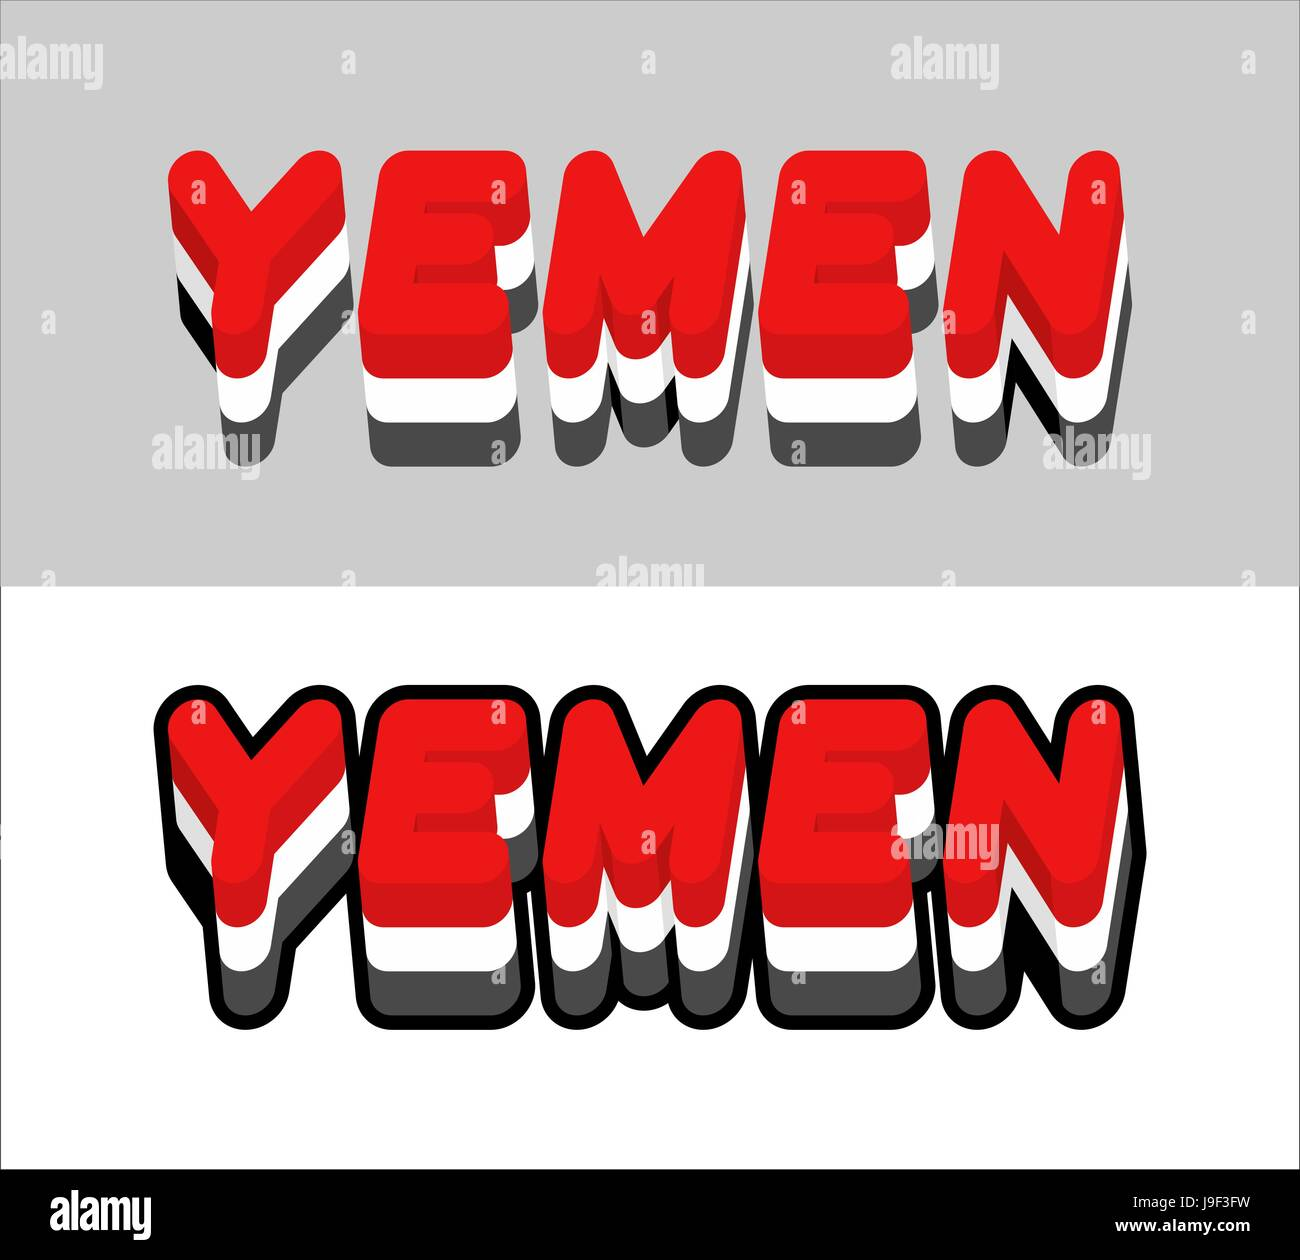 Yemen typography. Text of Yemeni flag. Emblem of the state in Southwest Asia on white background. letters tricolor - Stock Vector